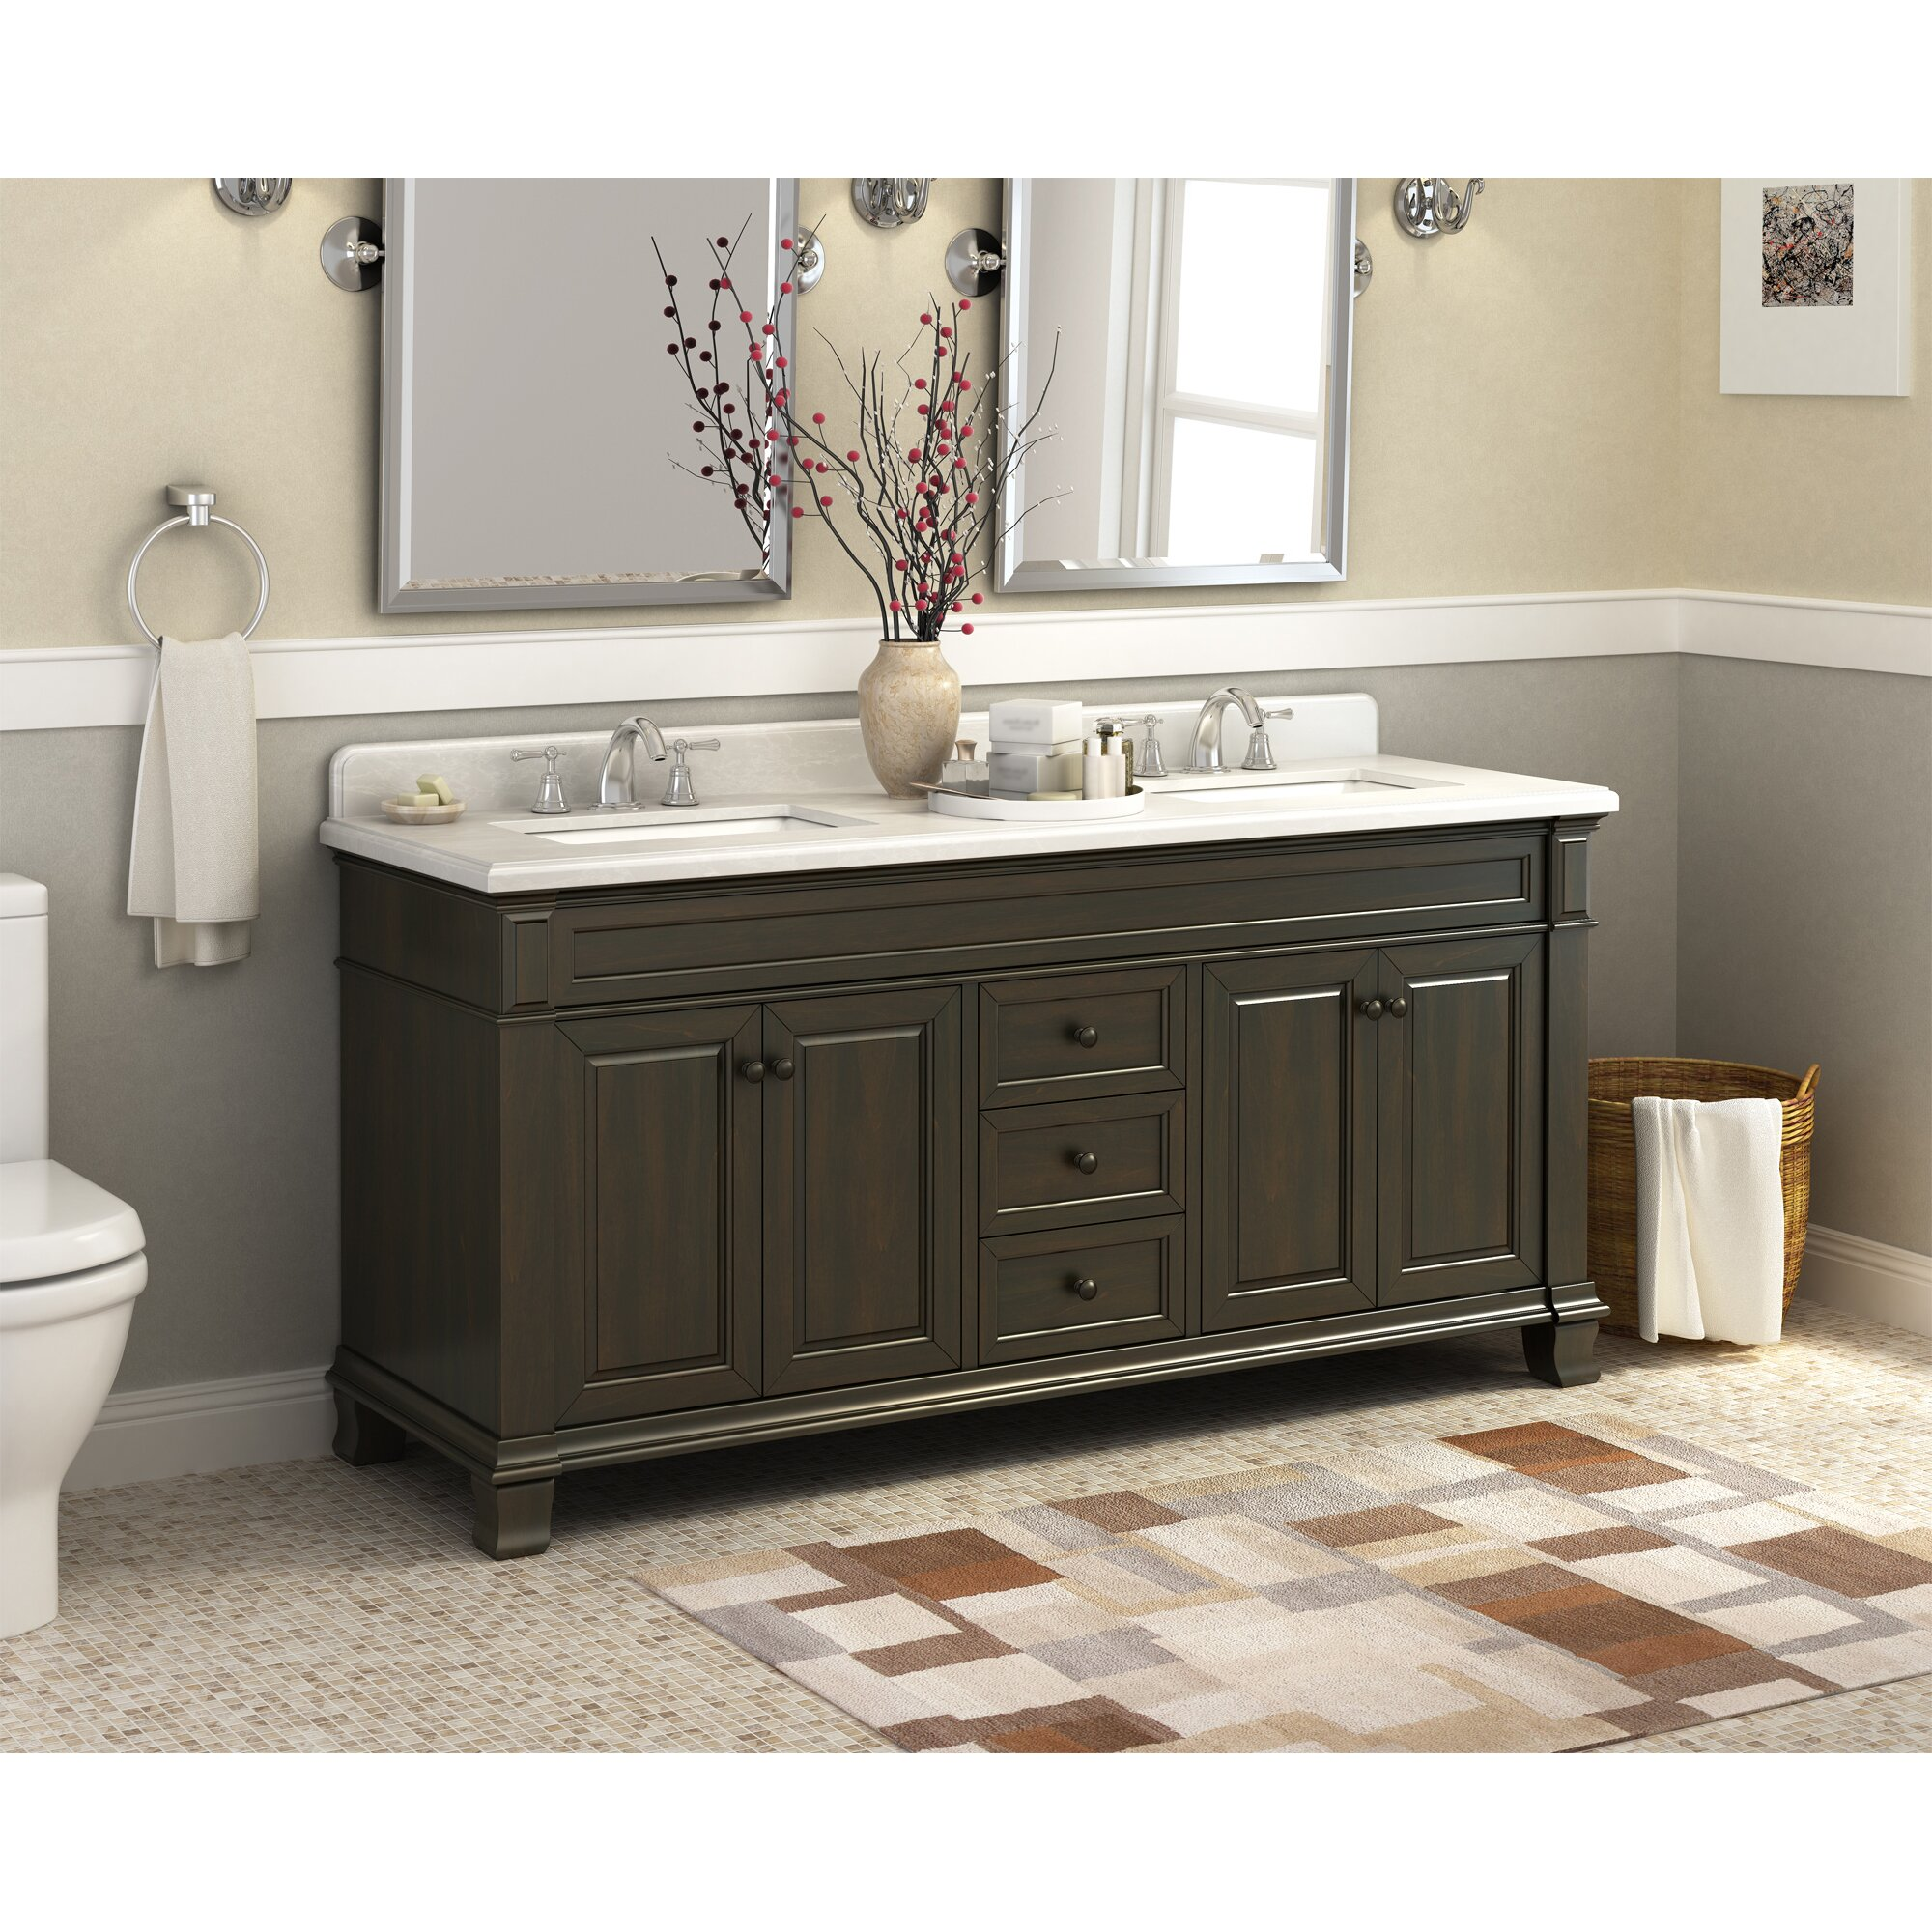 Double bathroom vanity - Lanza Kingsley 72 Quot Double Bathroom Vanity Set